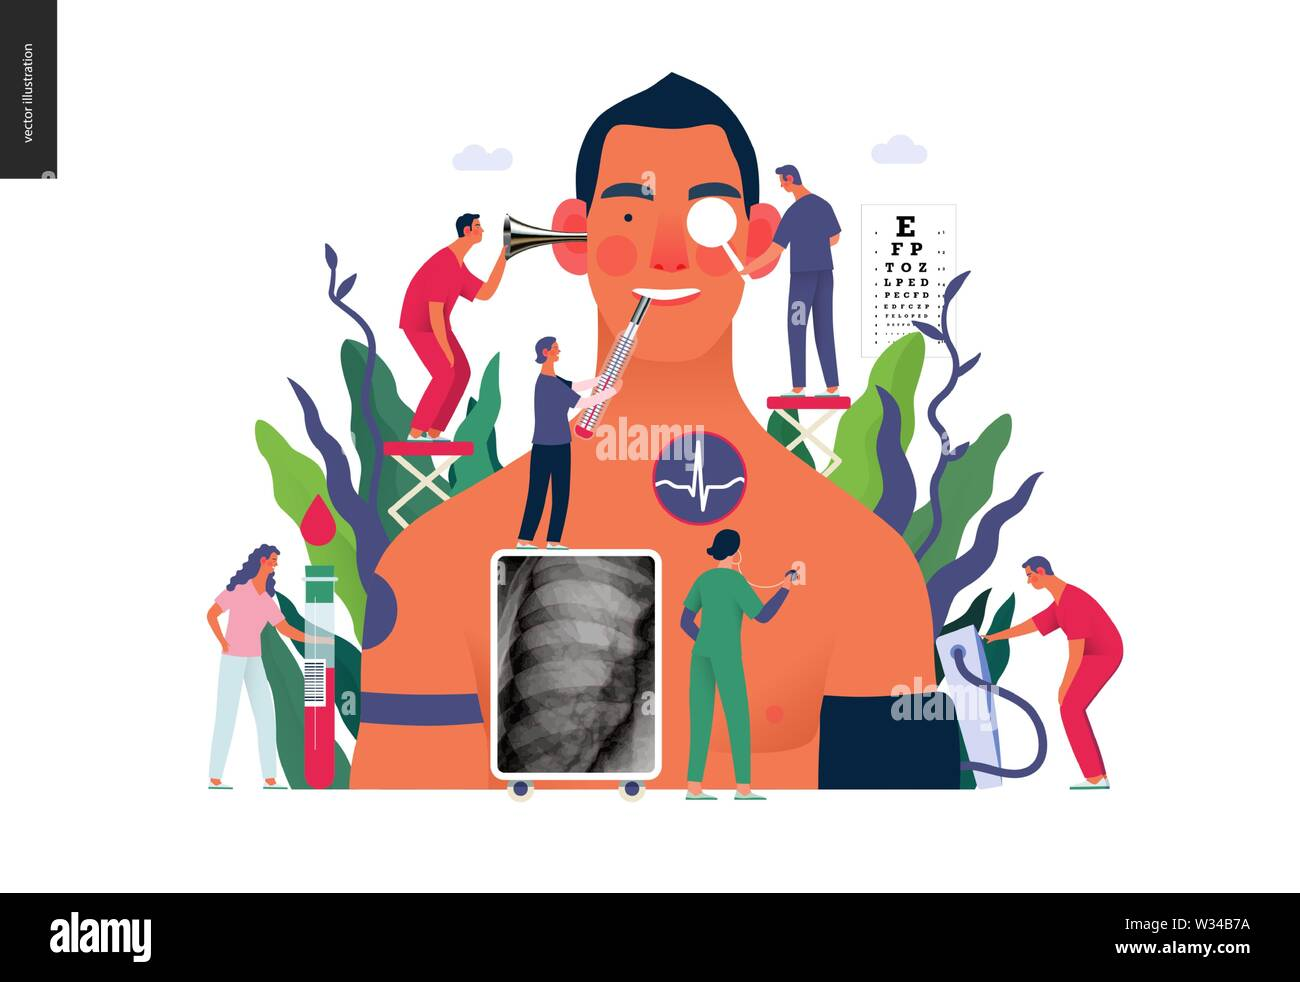 Annual health checkups -medical insurance illustration -modern flat vector concept digital illustration -doctors examing male patient checking hearing - Stock Image